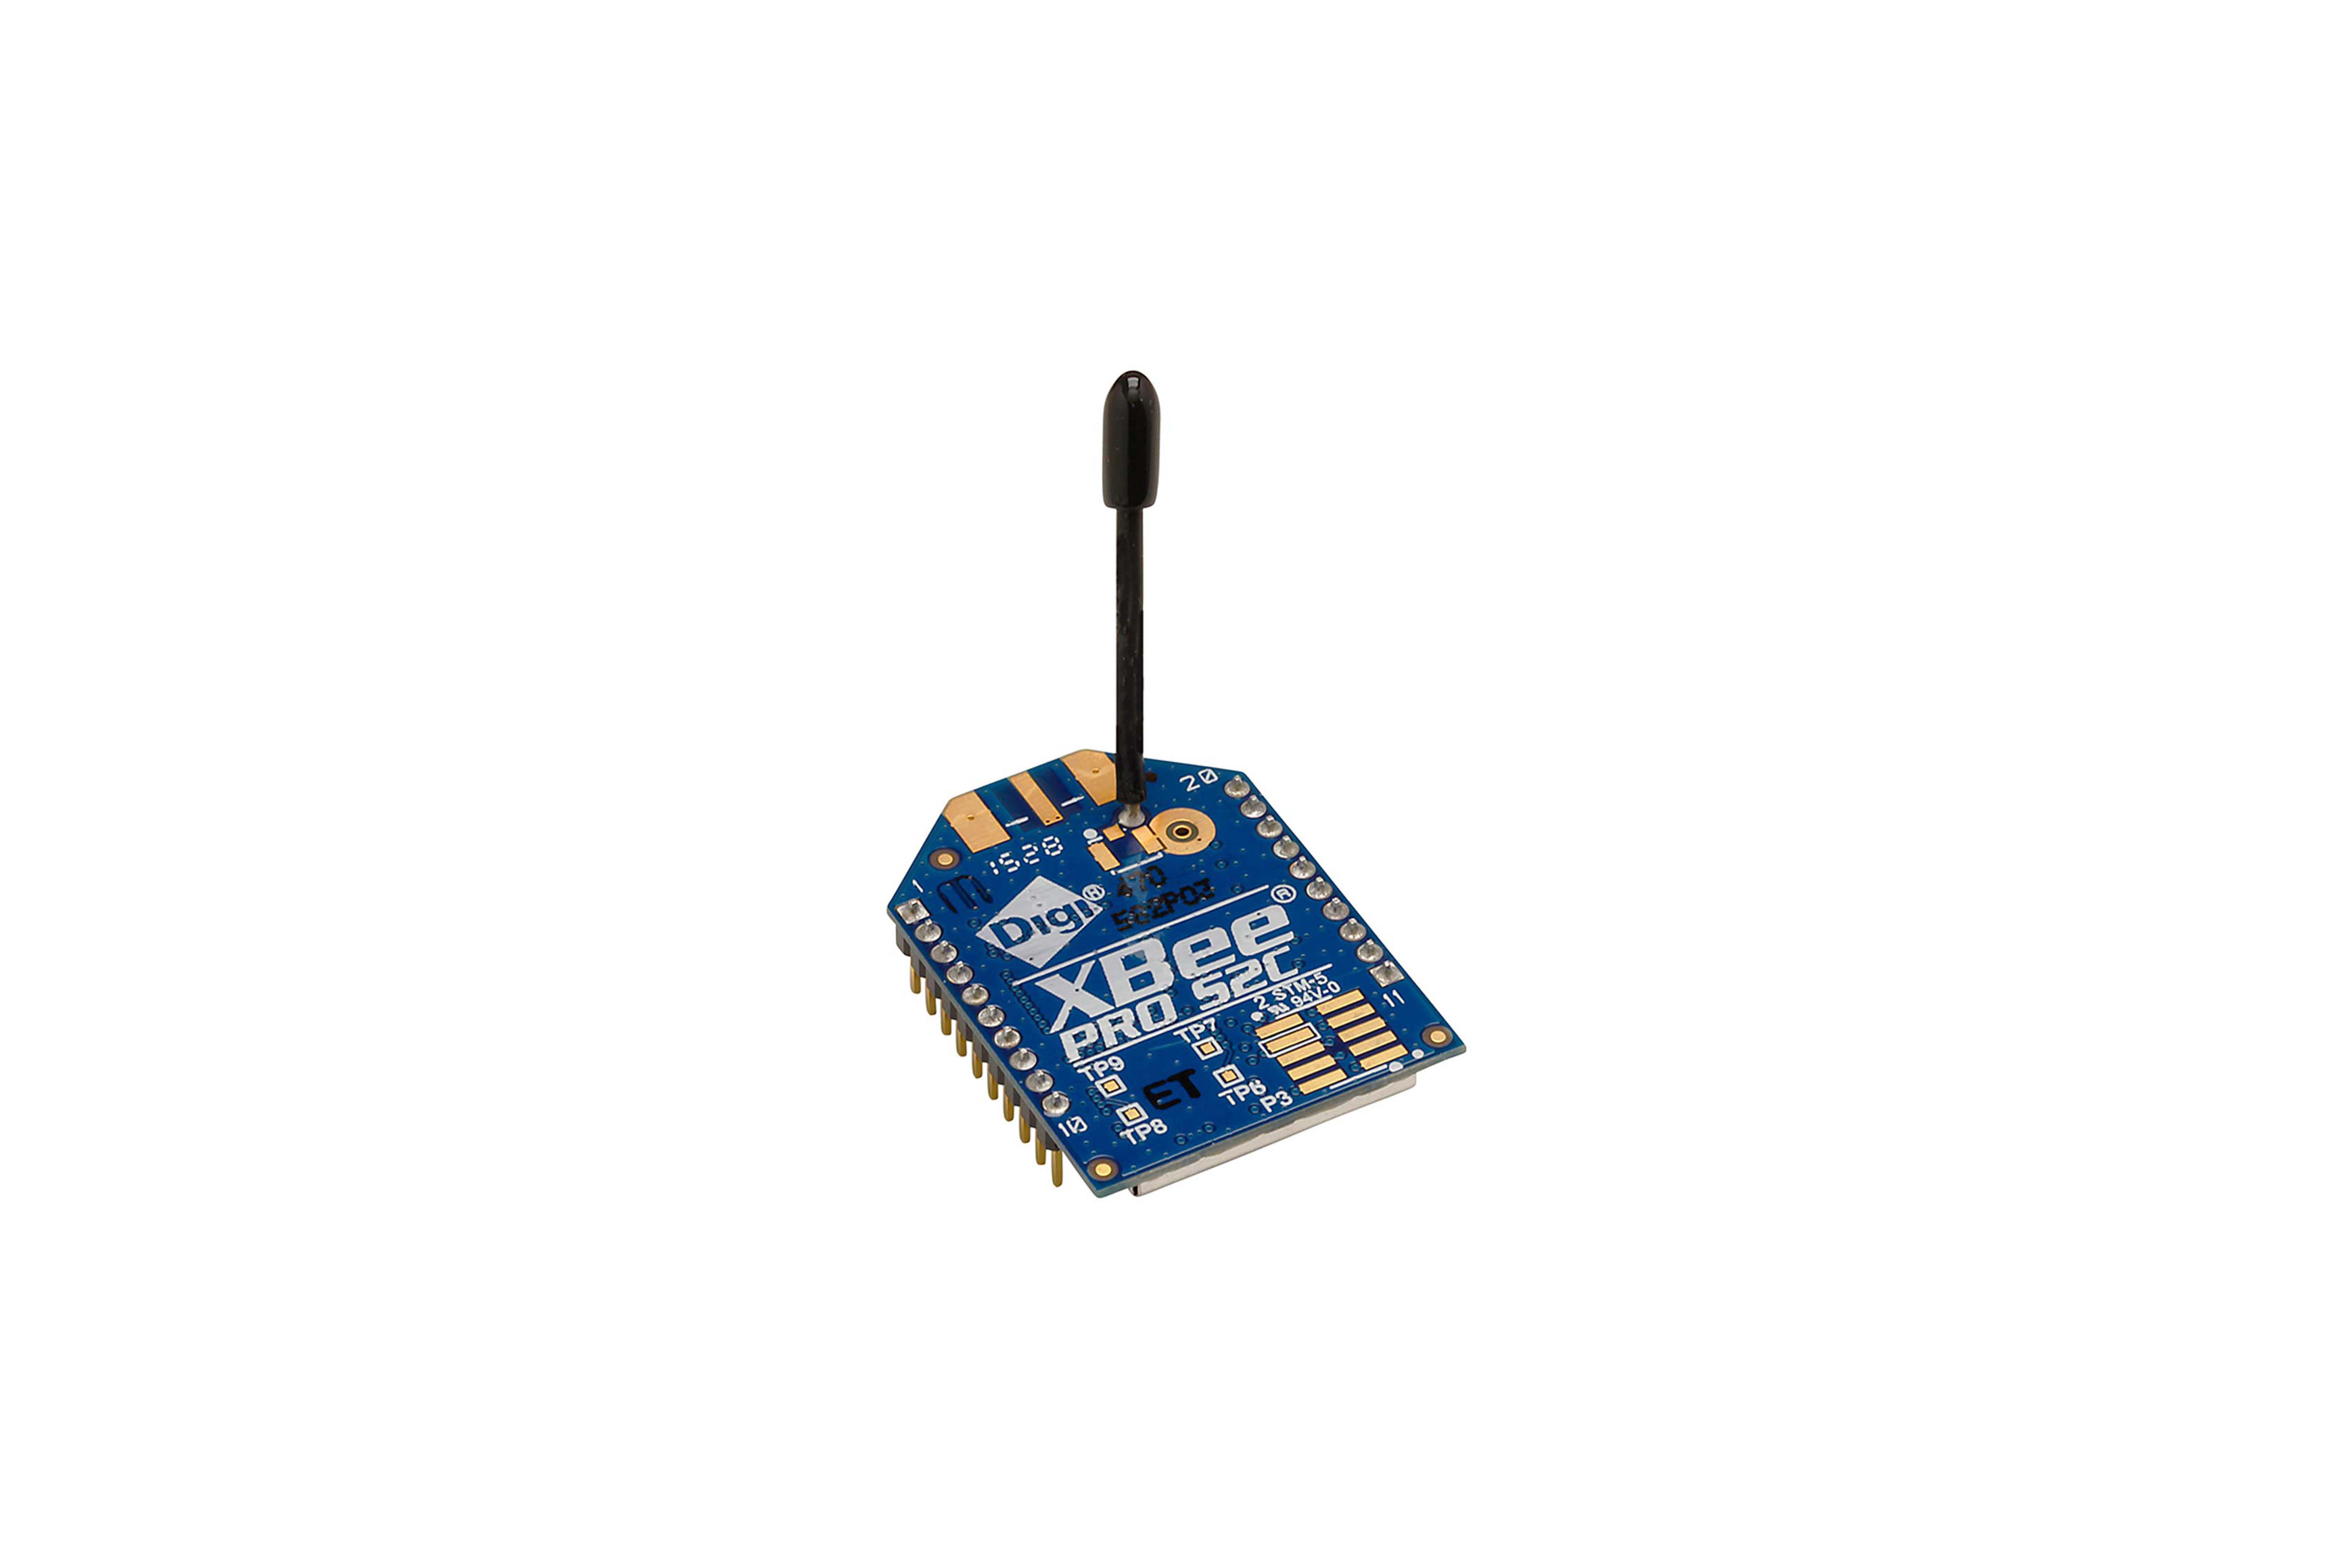 XBee-PRO S2C 802.15.4, 2,4 GHz, TH